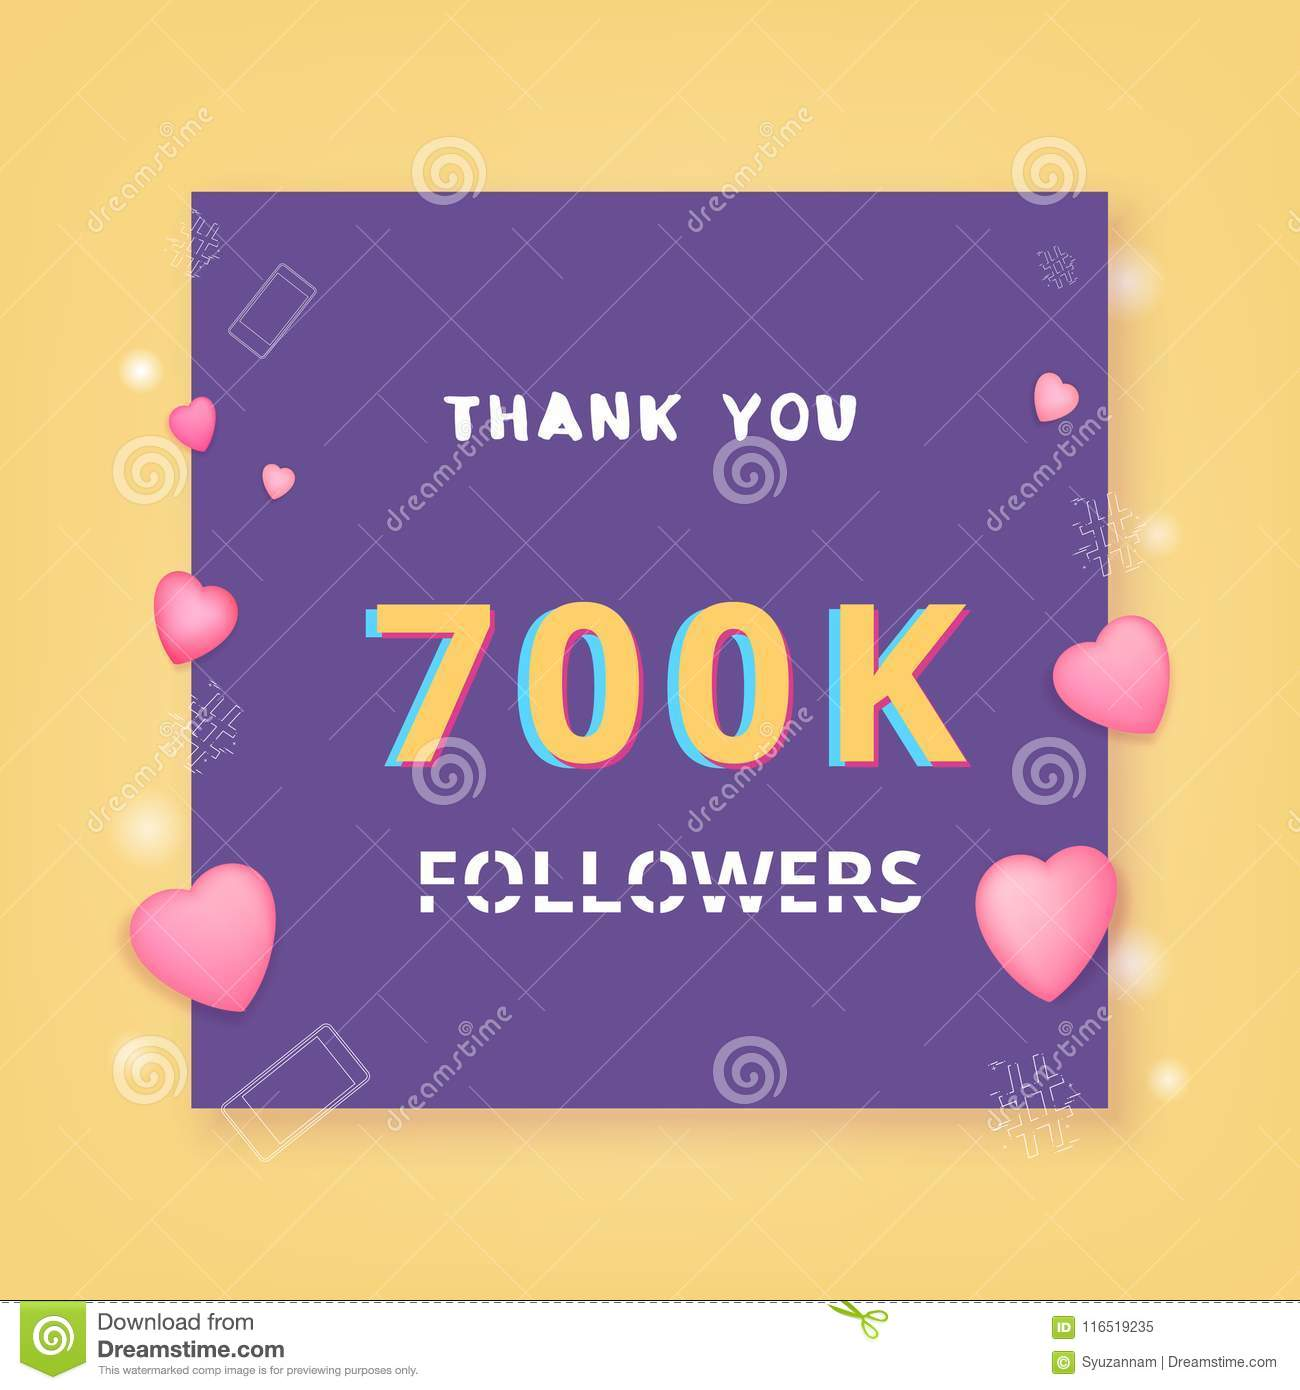 0d67bcbb648 700K Followers Thank You. Vector Illustration. Stock Vector ...